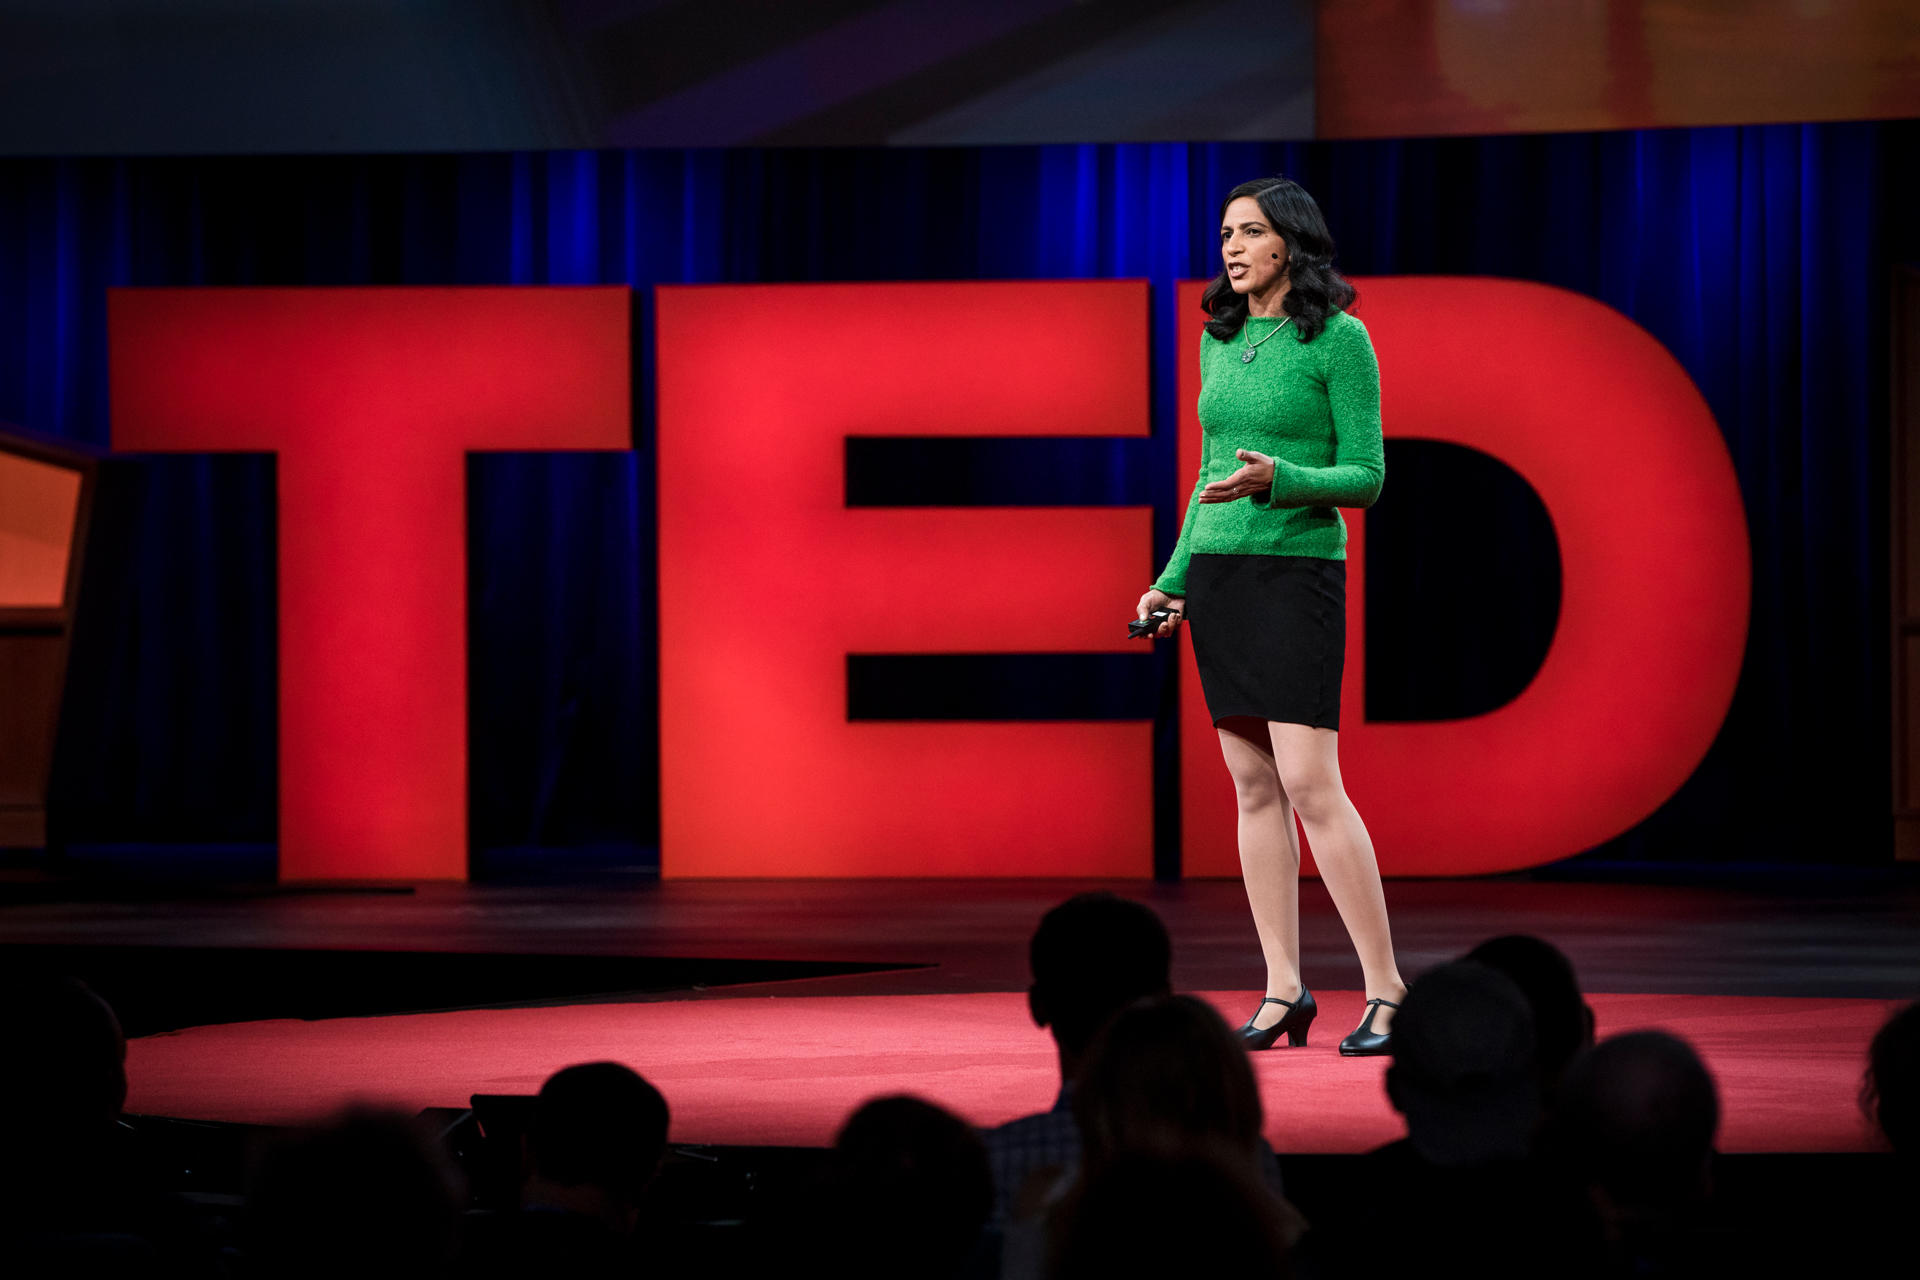 Radhika invited talk at TED 2017